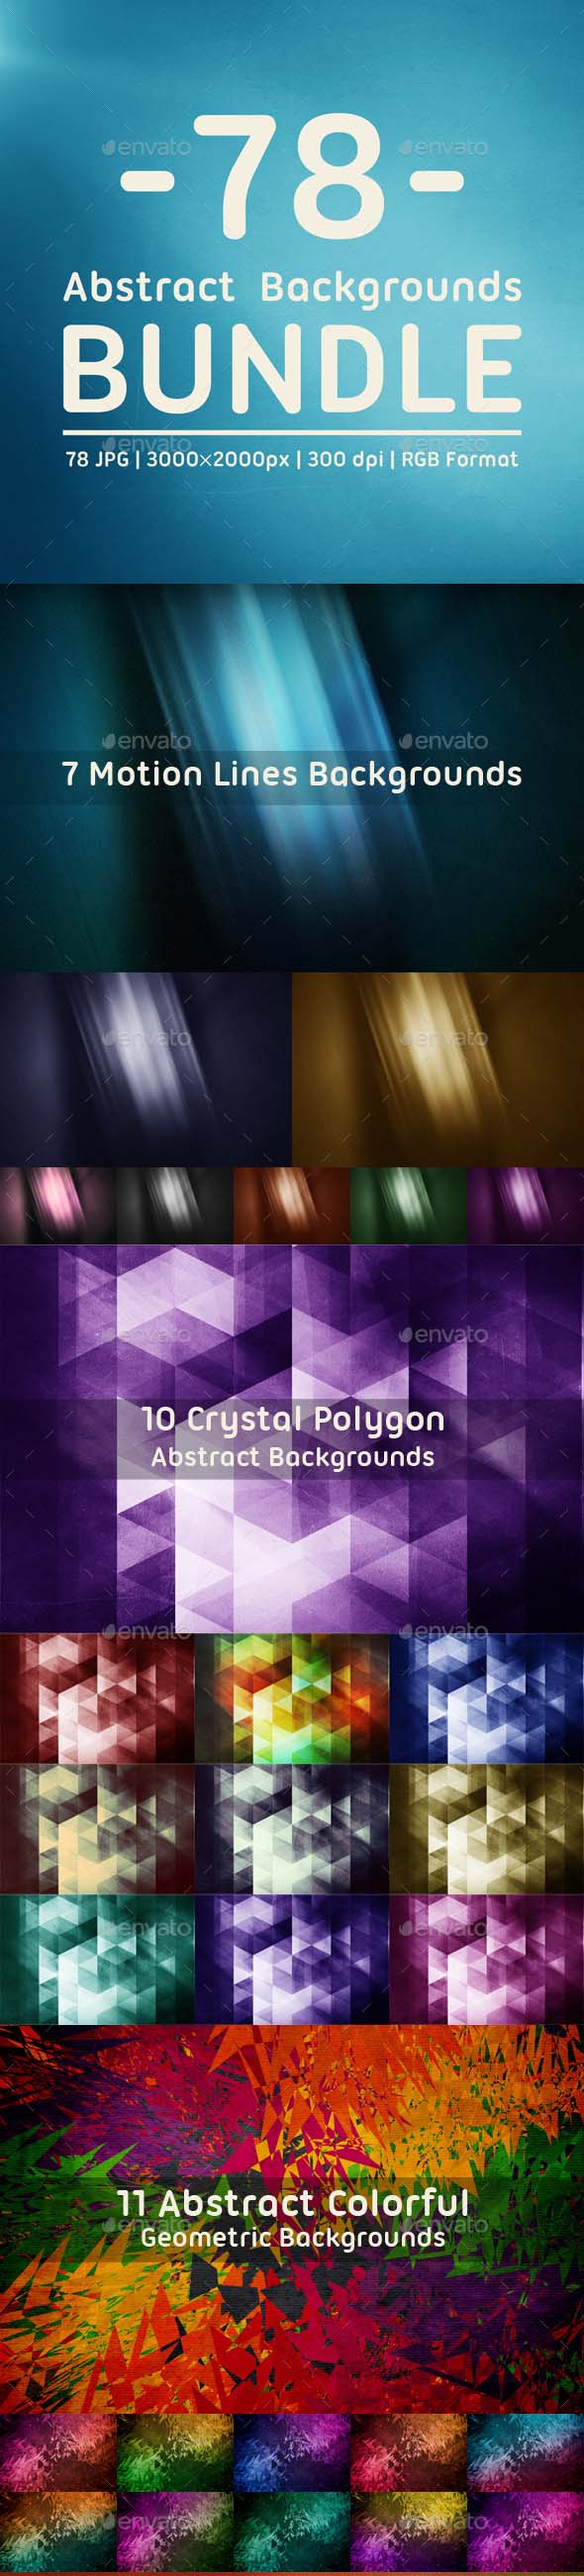 78 Abstract Backgrounds Bundle